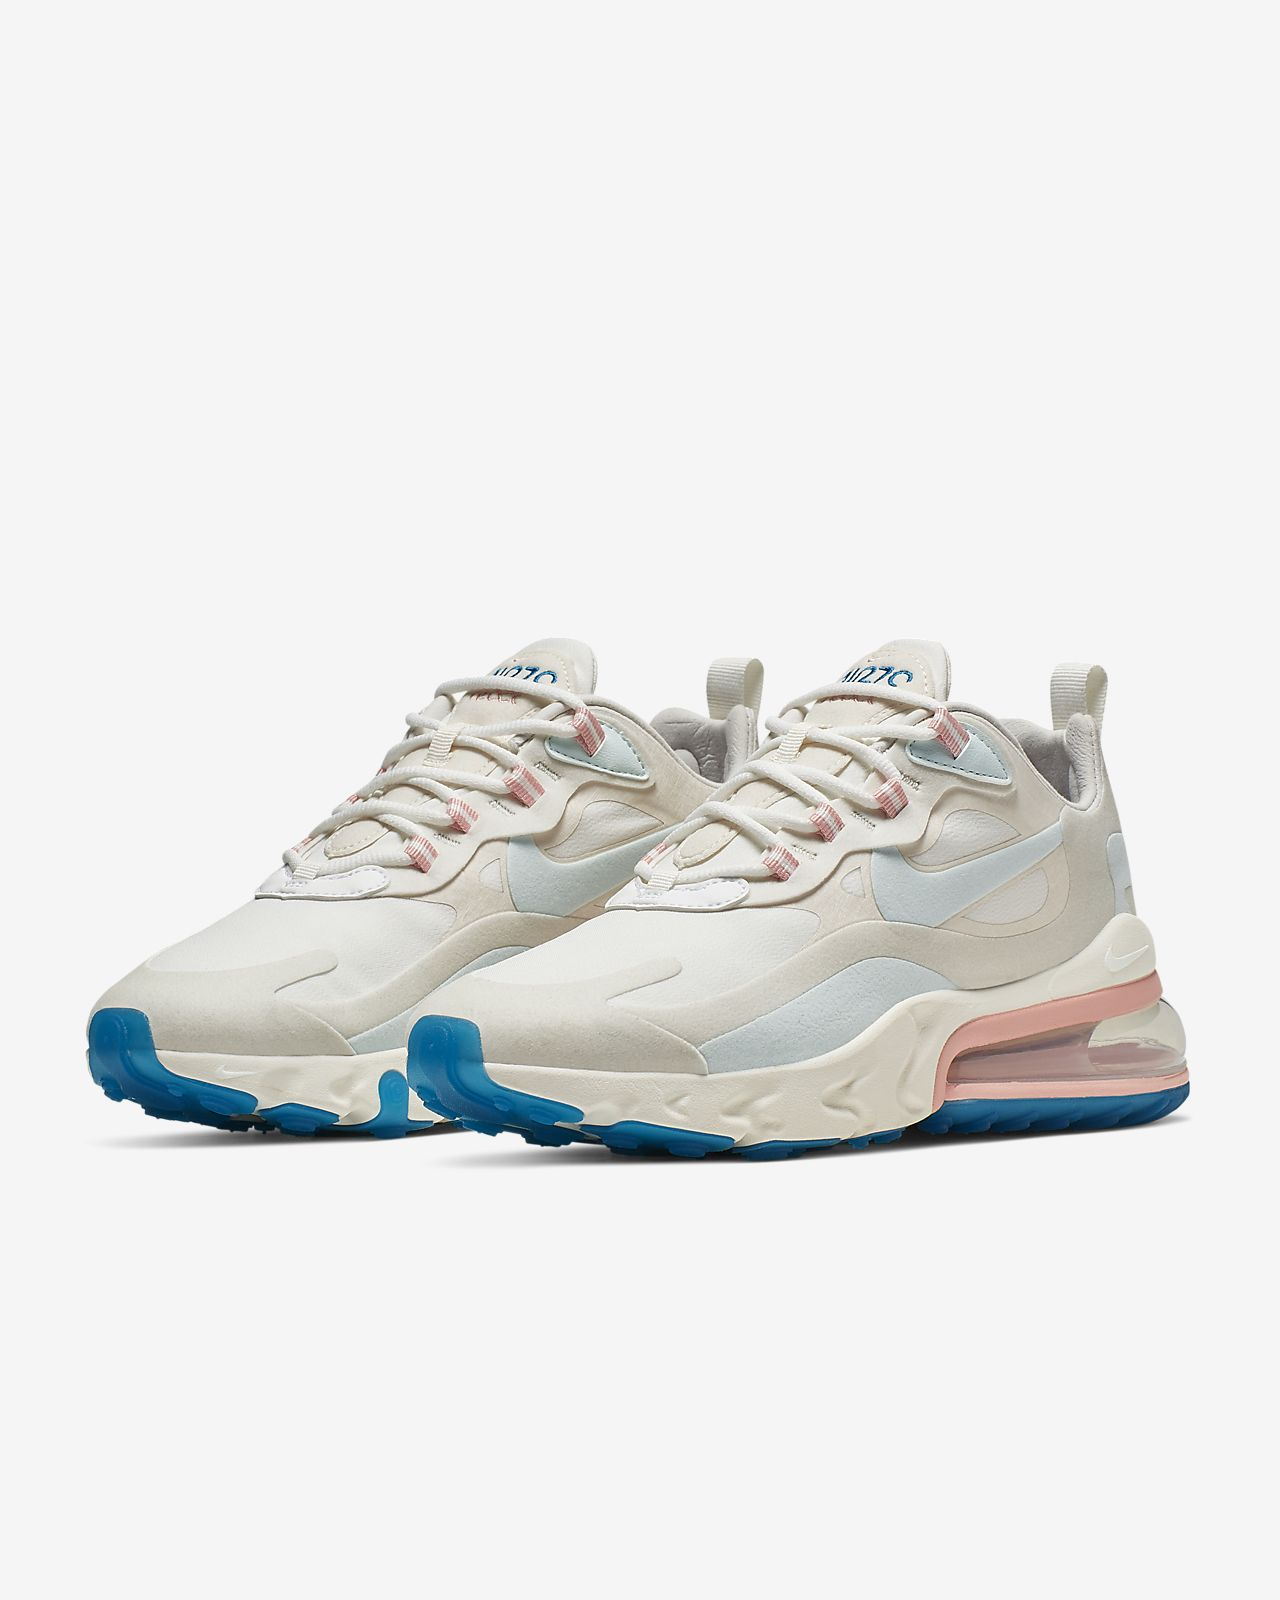 arrives cheap sale limited guantity Chaussure Nike Air Max 270 React (American Modern) pour Femme